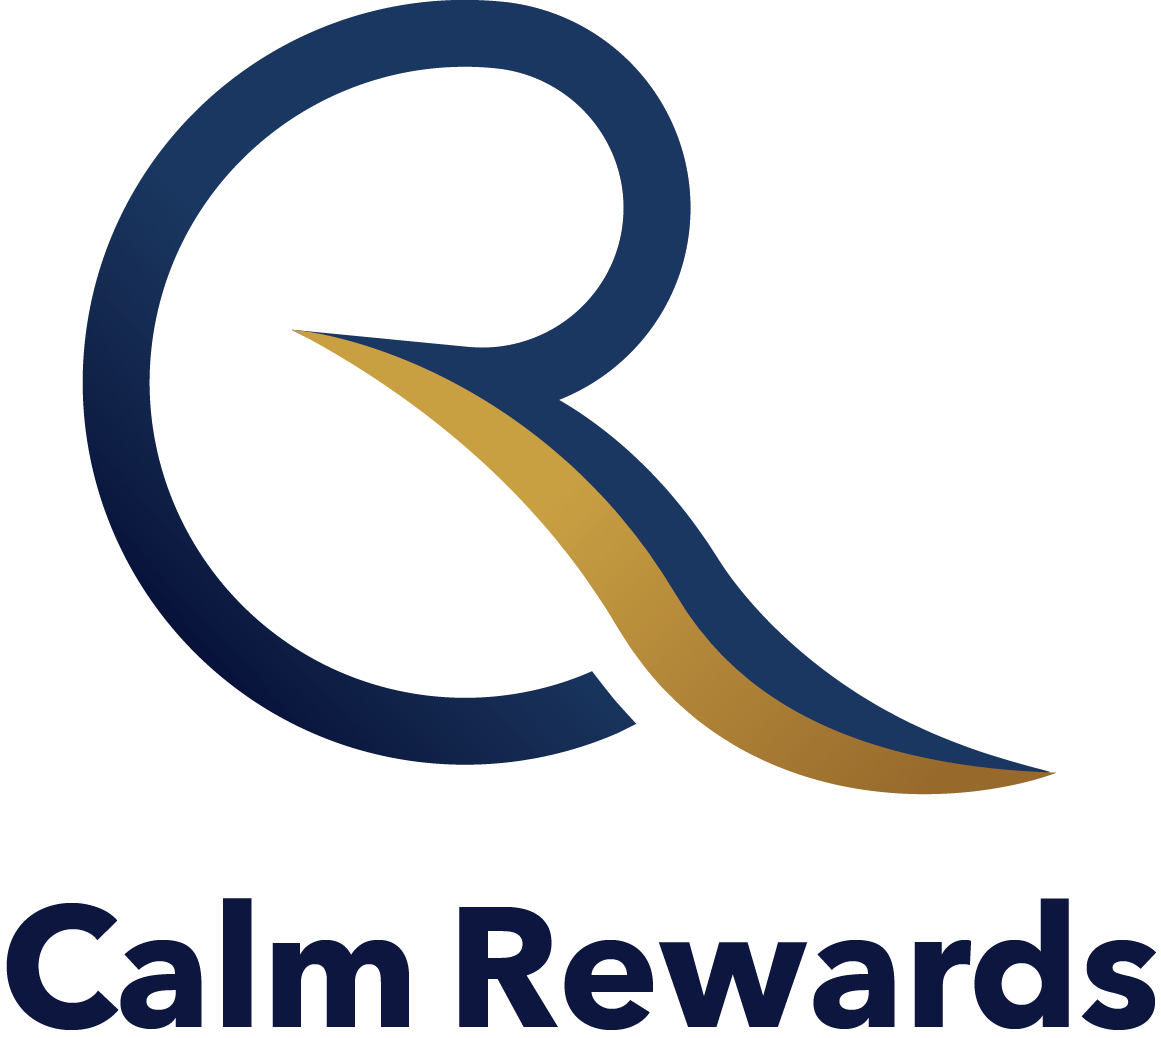 CalmRewards-logo.png (62 KB)